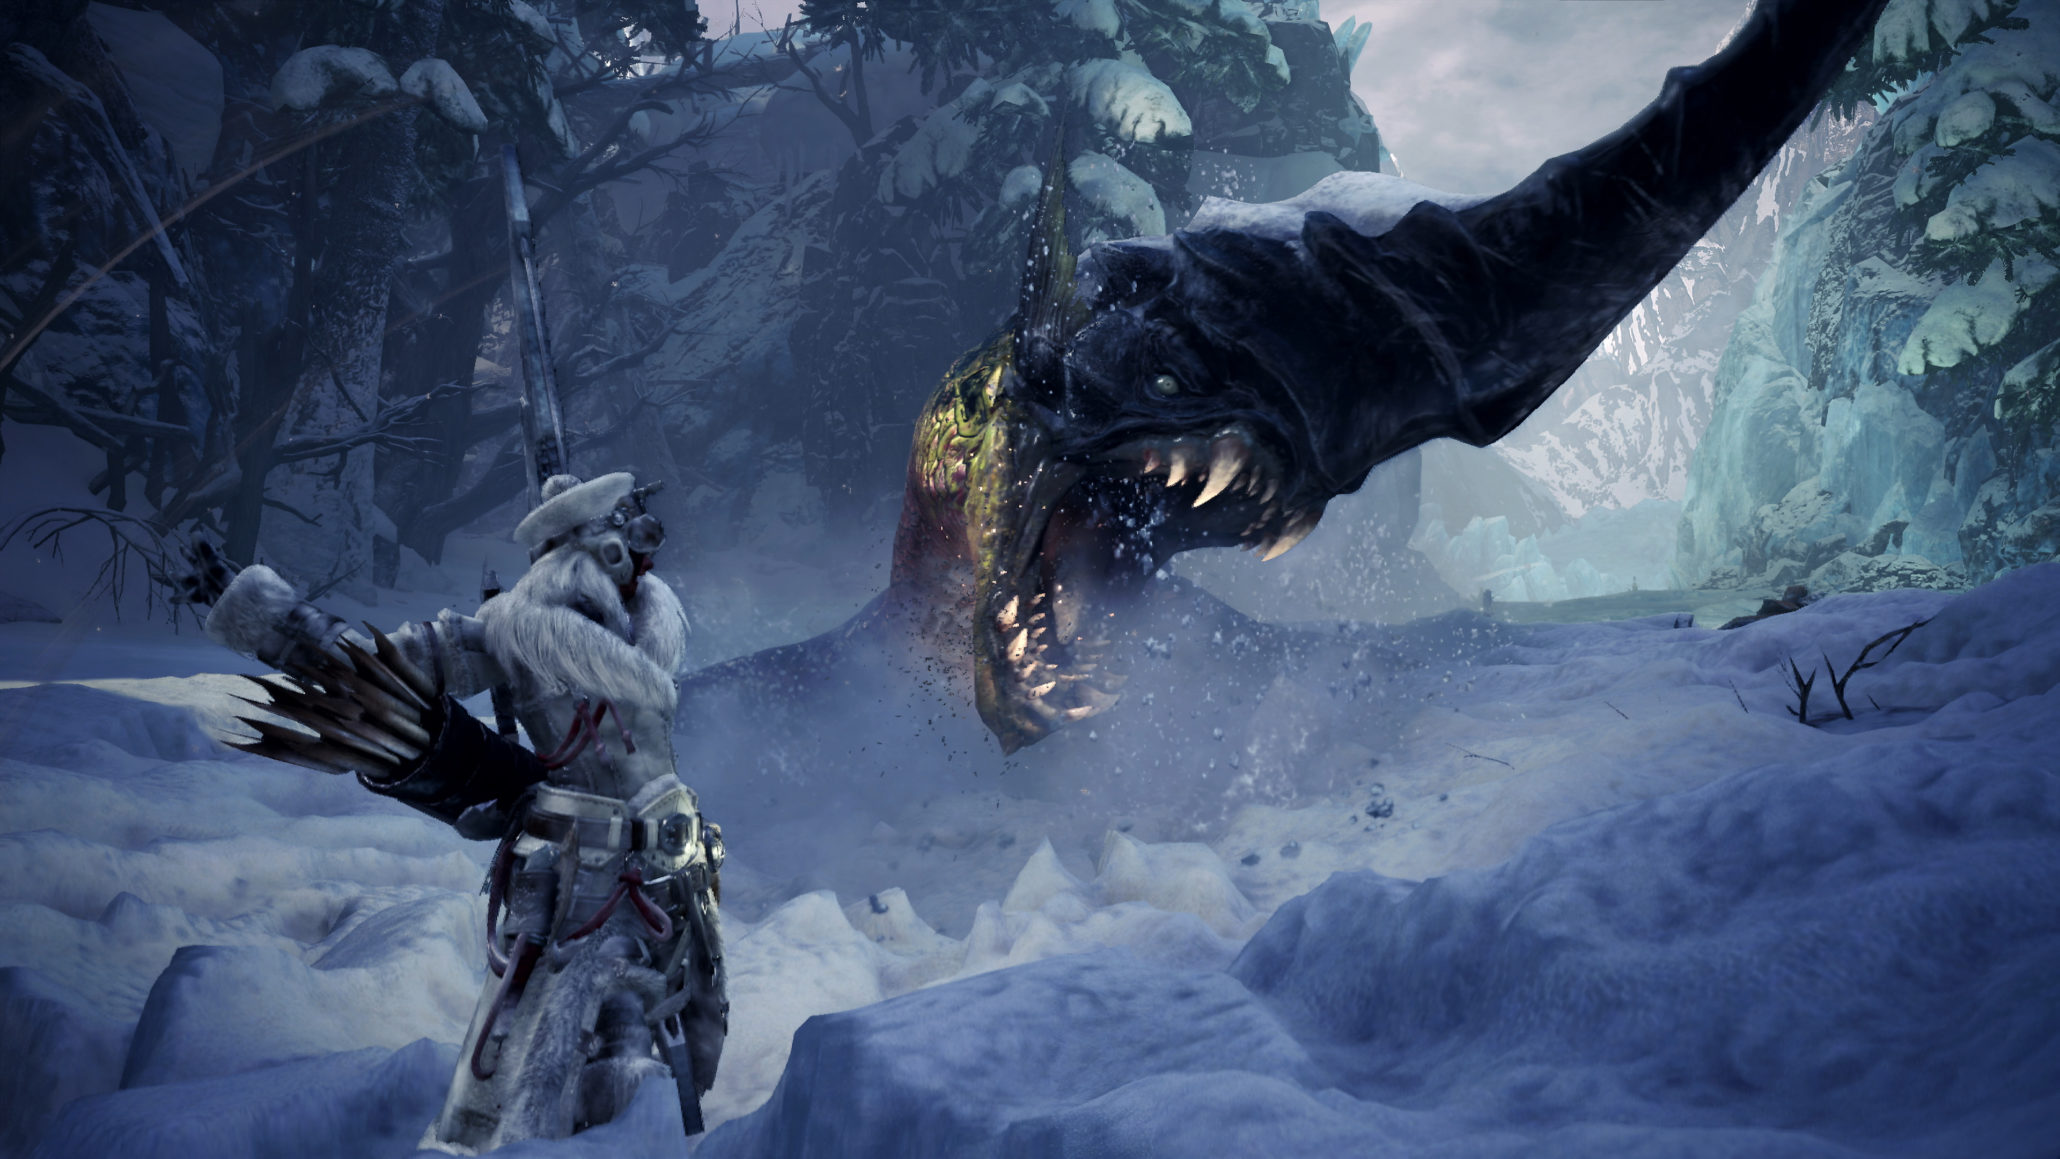 Check out the first trailer for the upcoming Monster Hunter movie